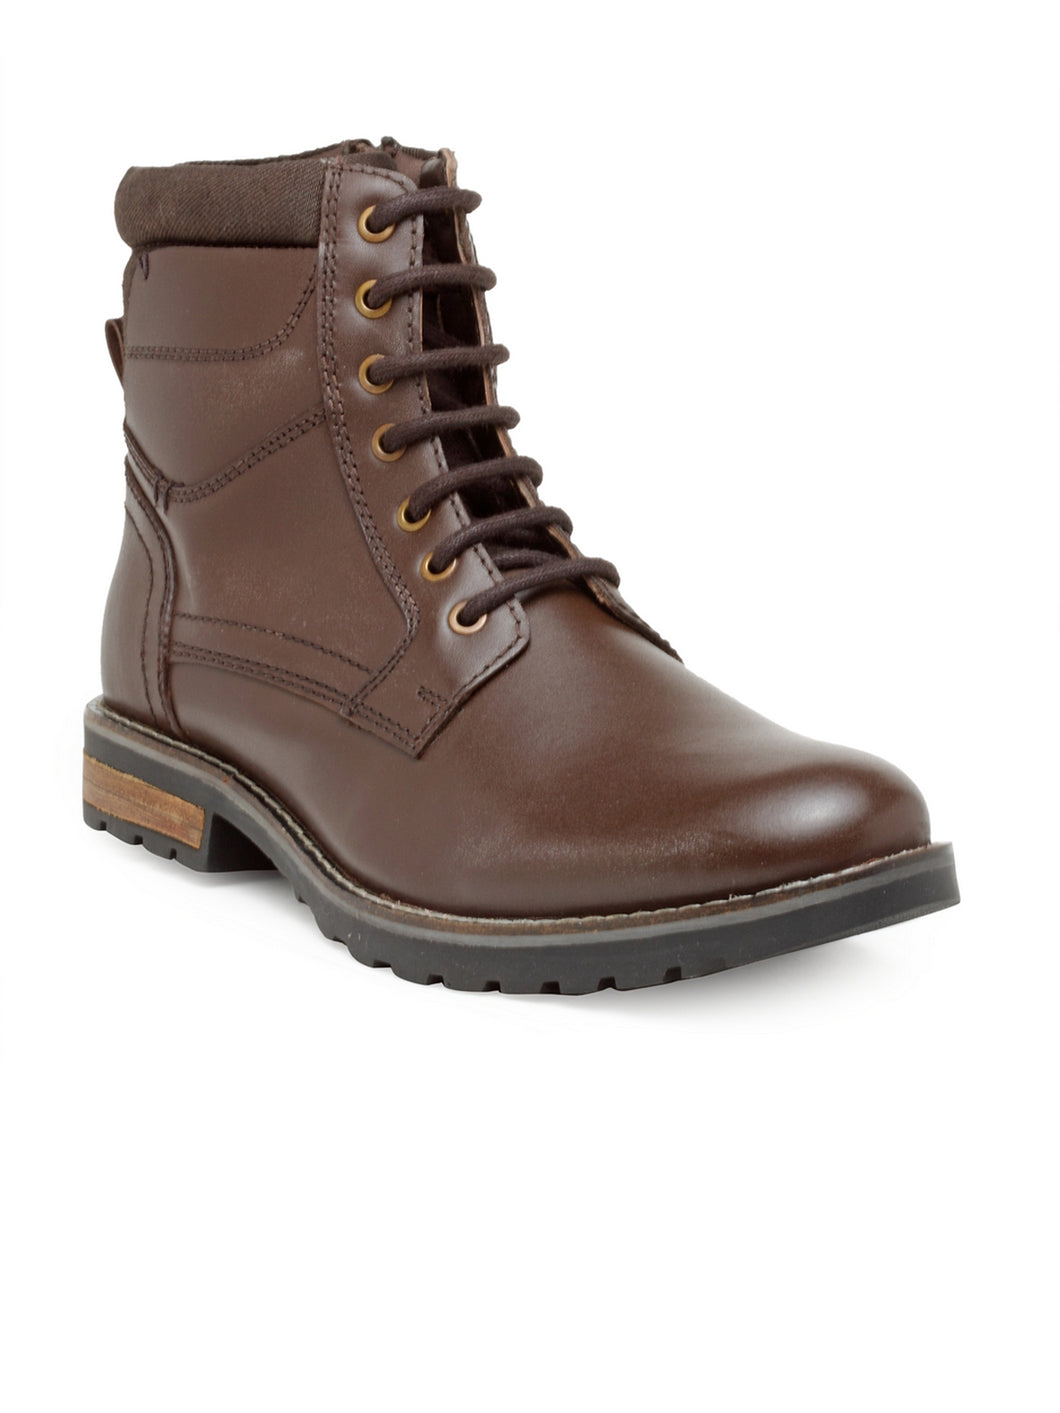 Teakwood Leathers Men's Brown Casual Ankle Lace-Up Boots